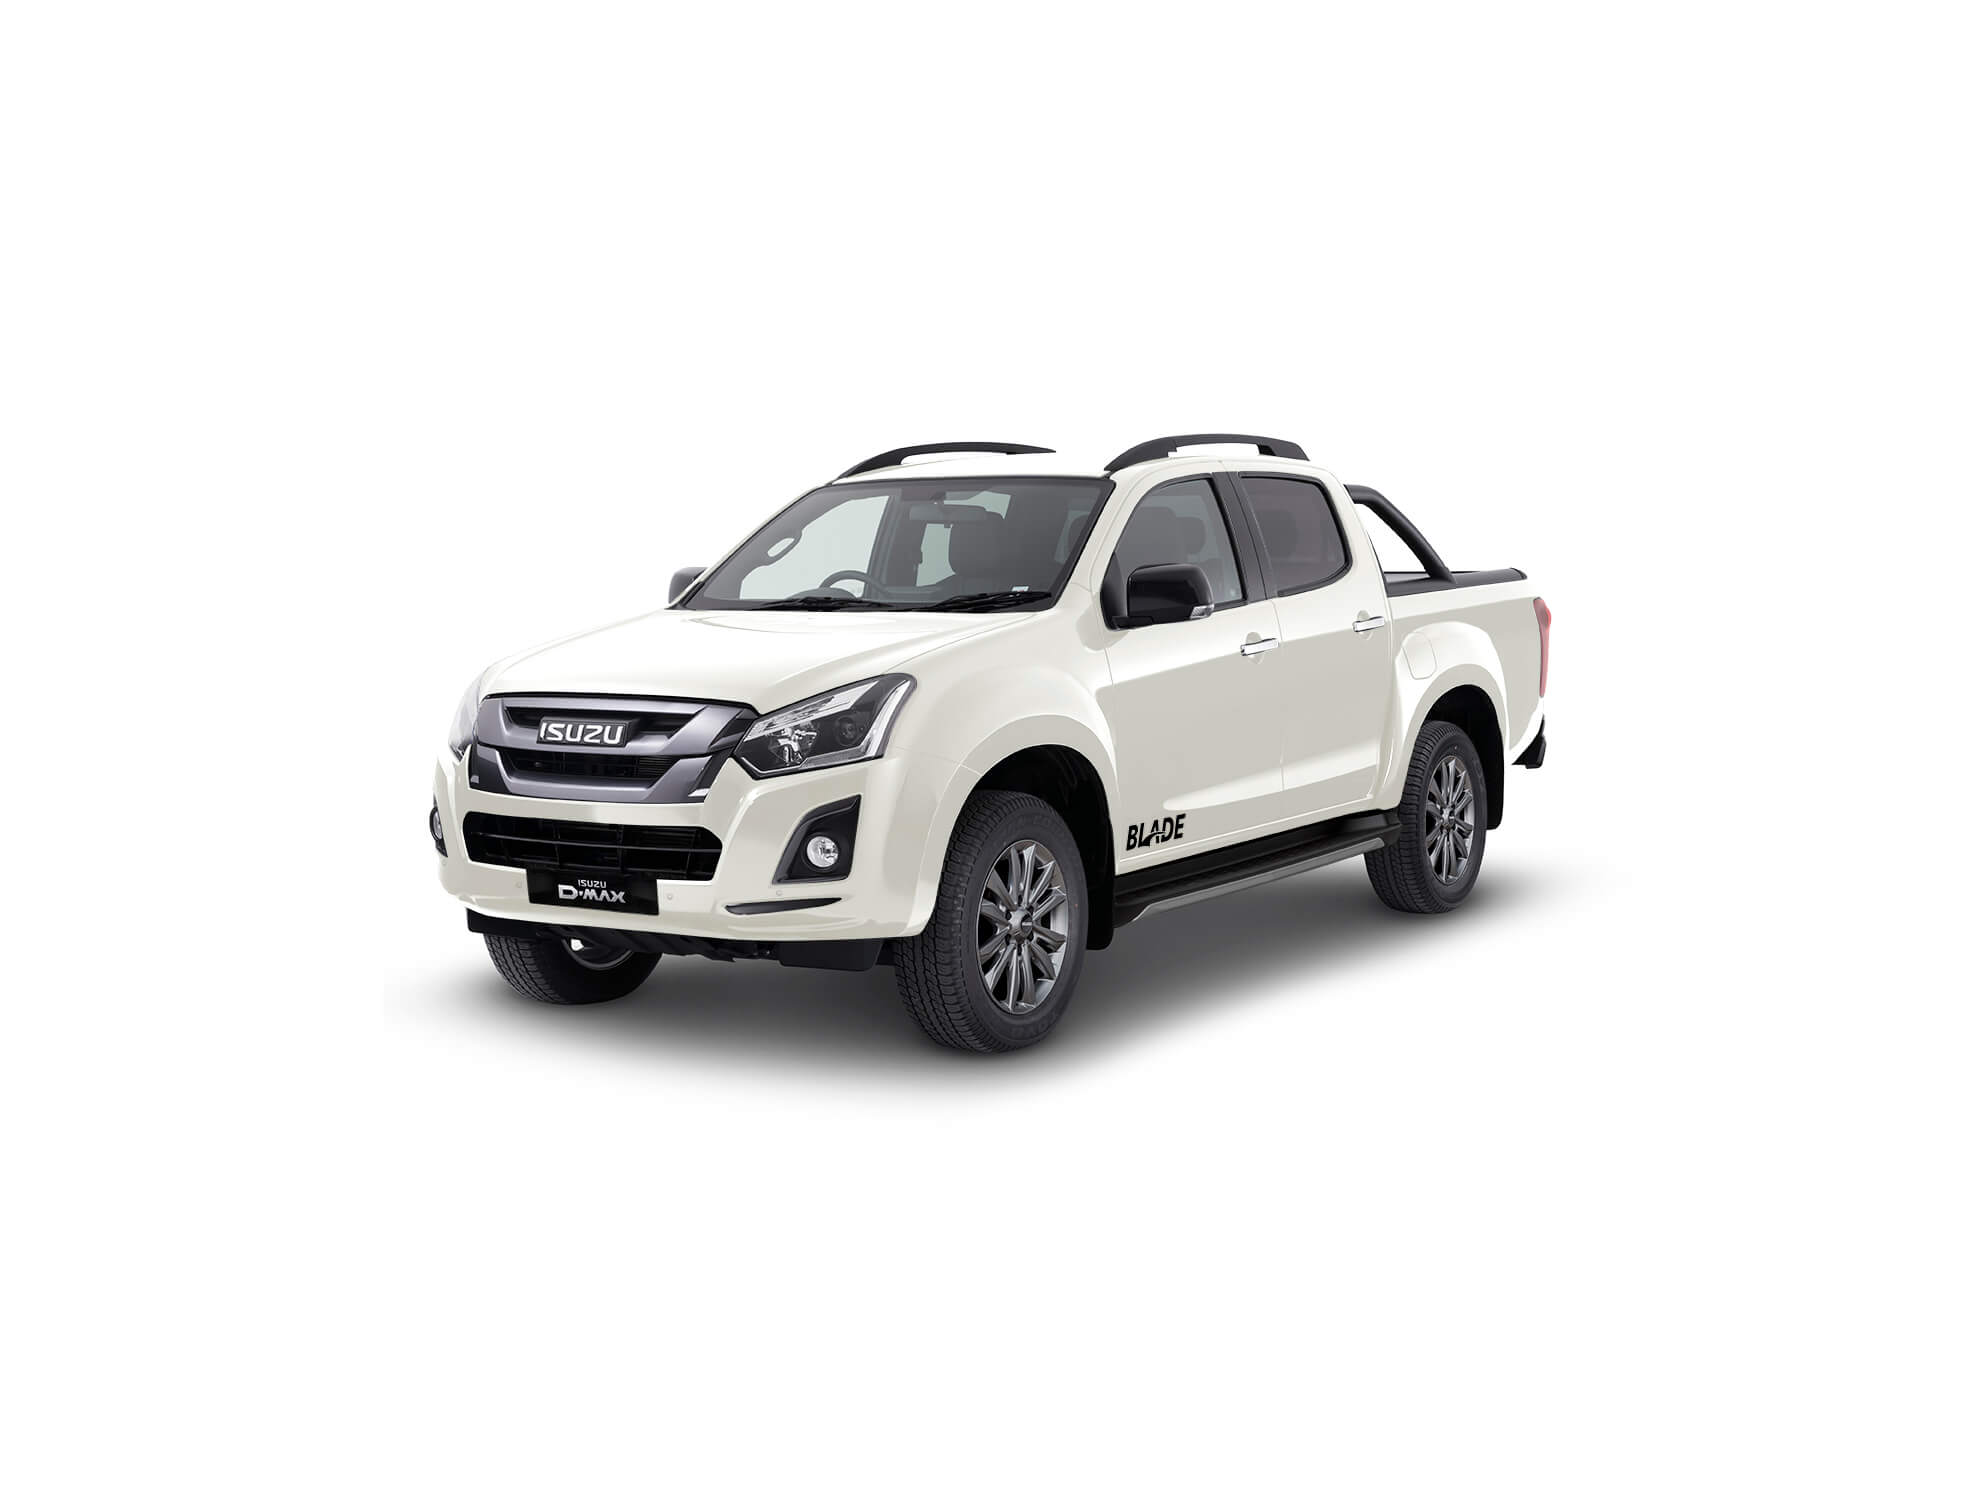 Isuzu D-Max Blade in white